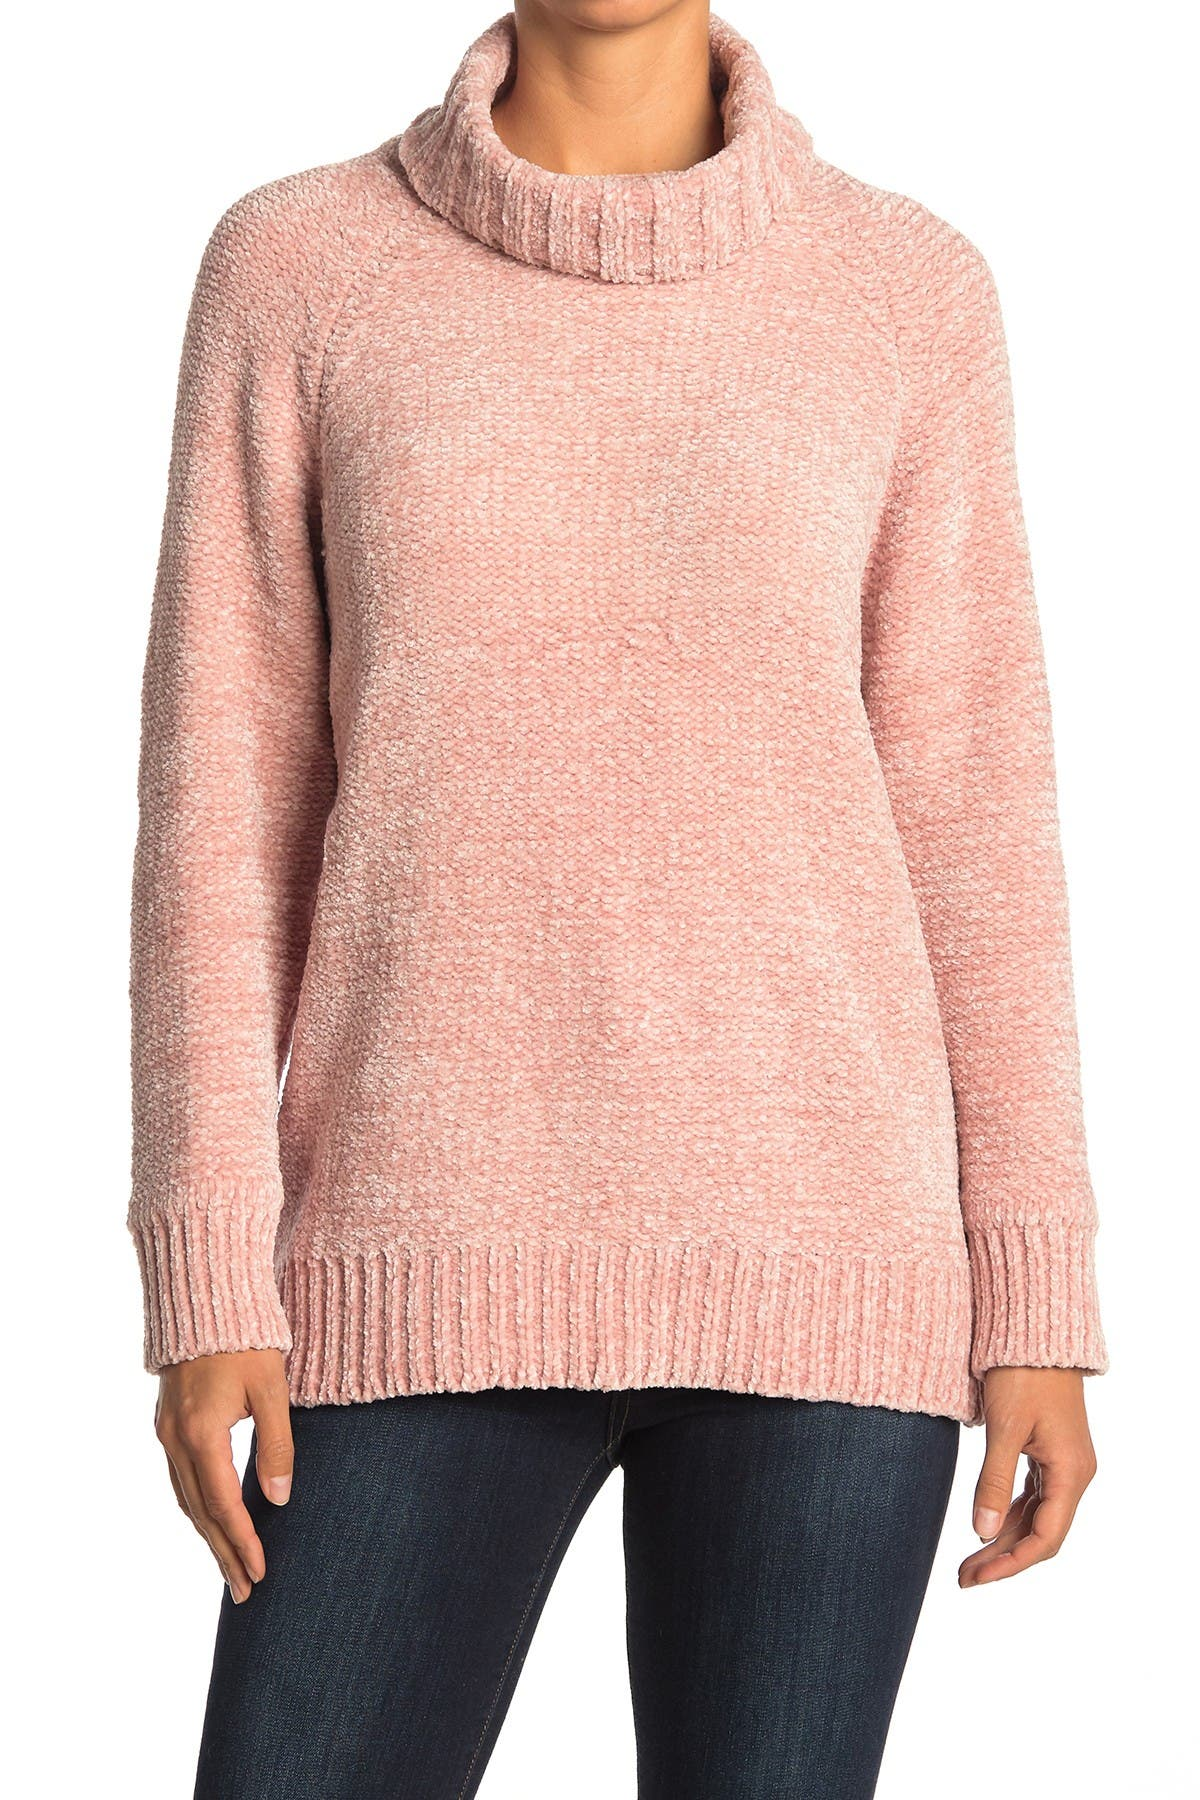 Image of Lush Chenille Knit Turtleneck Sweater